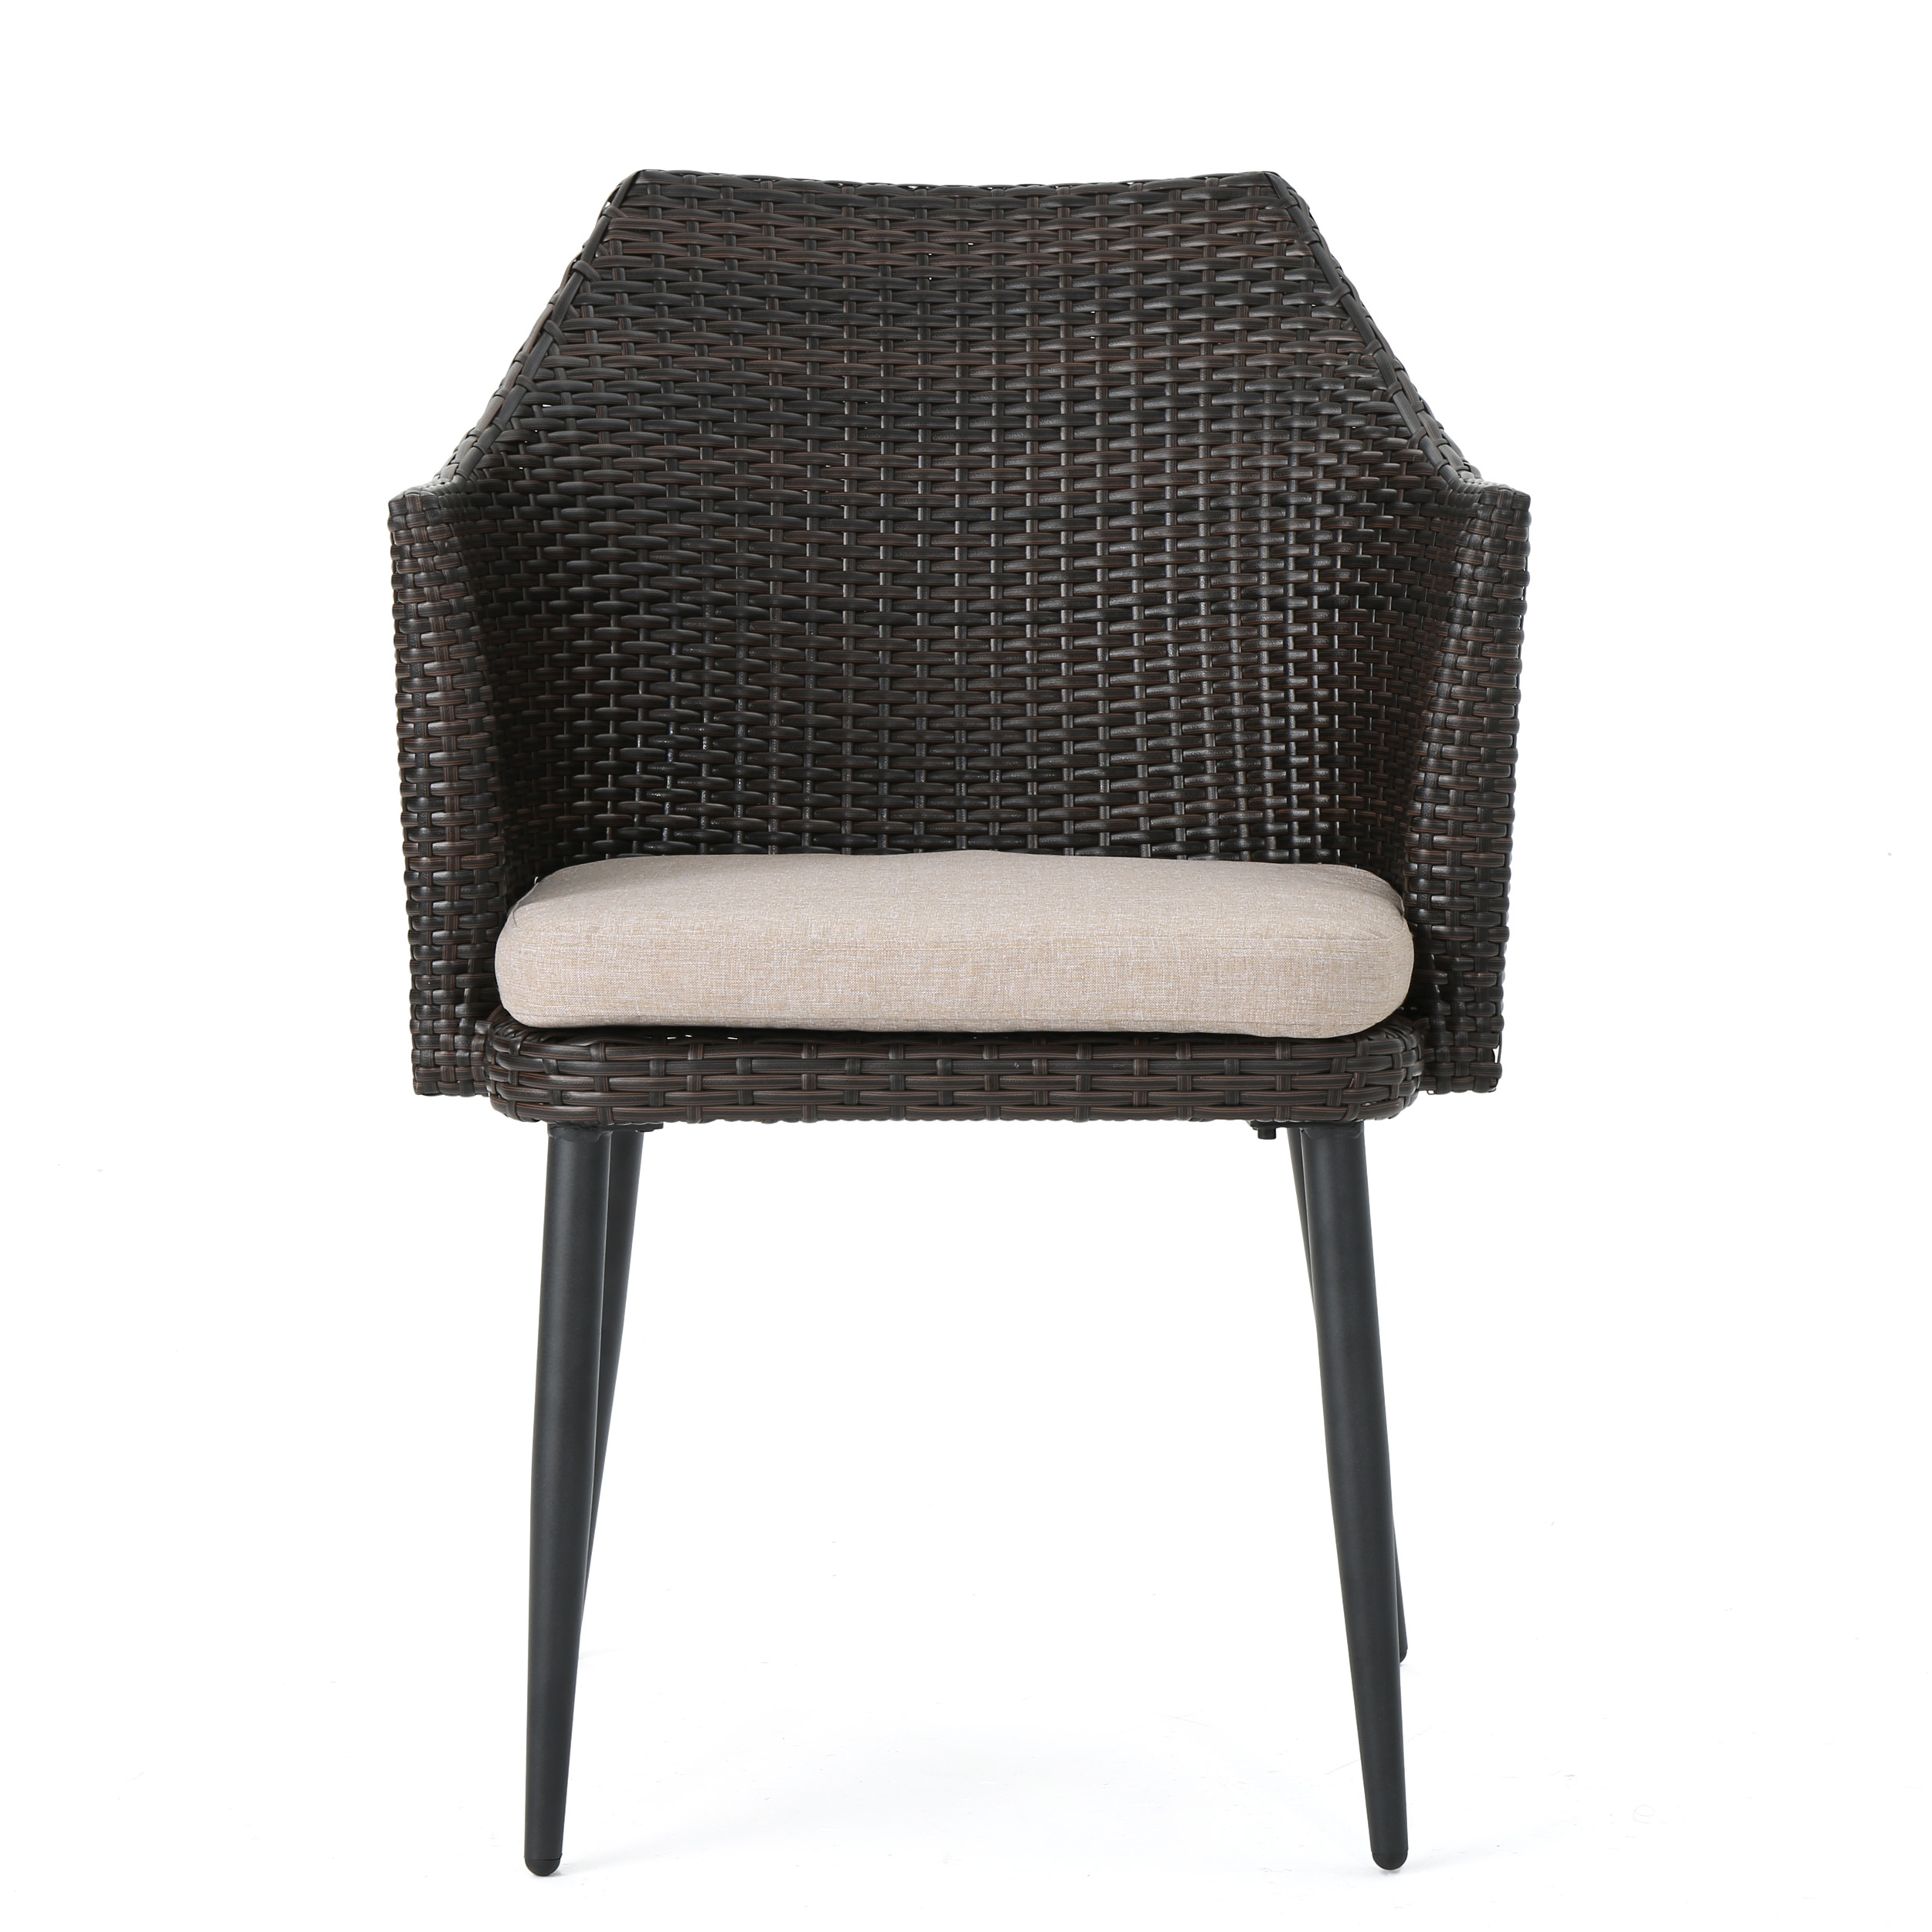 Ibiza-Outdoor-Wicker-Dining-Chairs-with-Water-Resistant-Cushion-Set-of-2 thumbnail 8